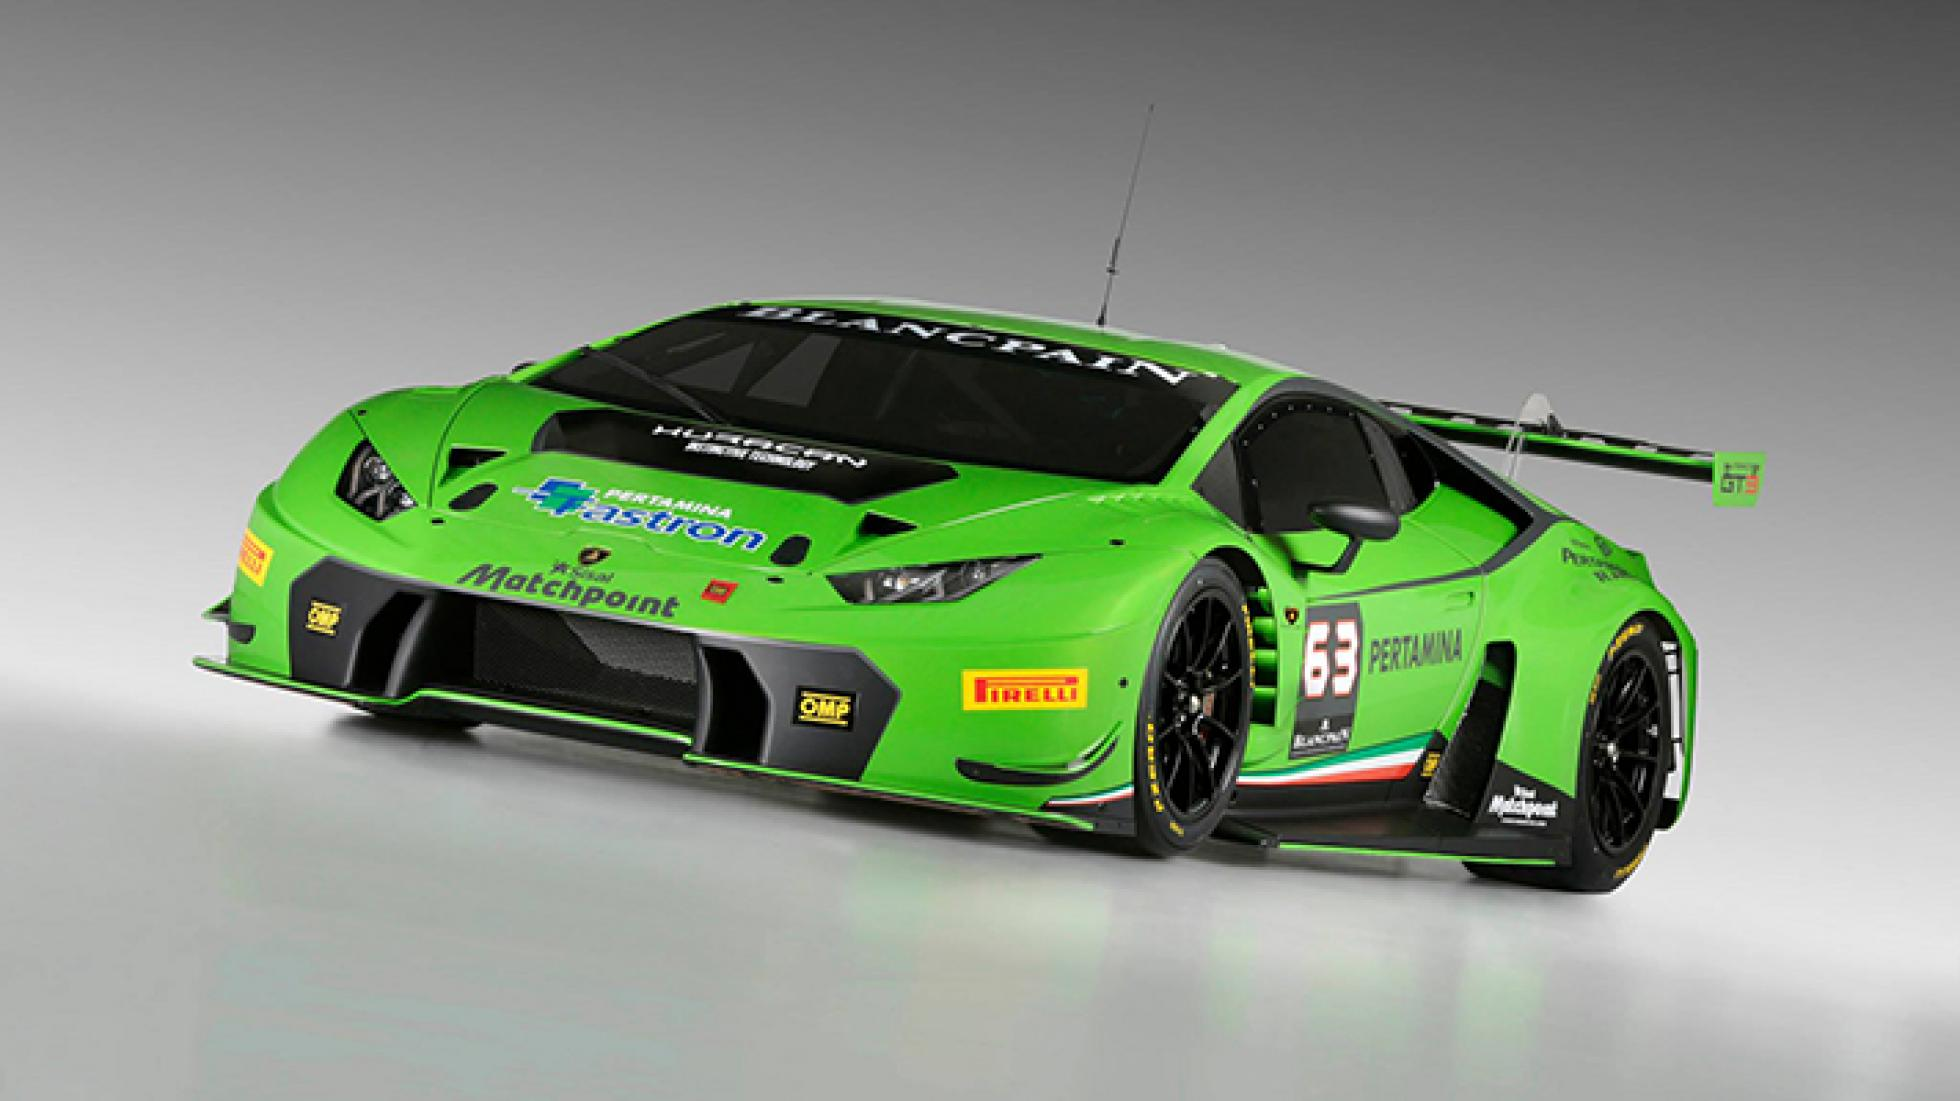 Expect a slightly more civil version of this Huracan GT3 Race Car but then for the public road